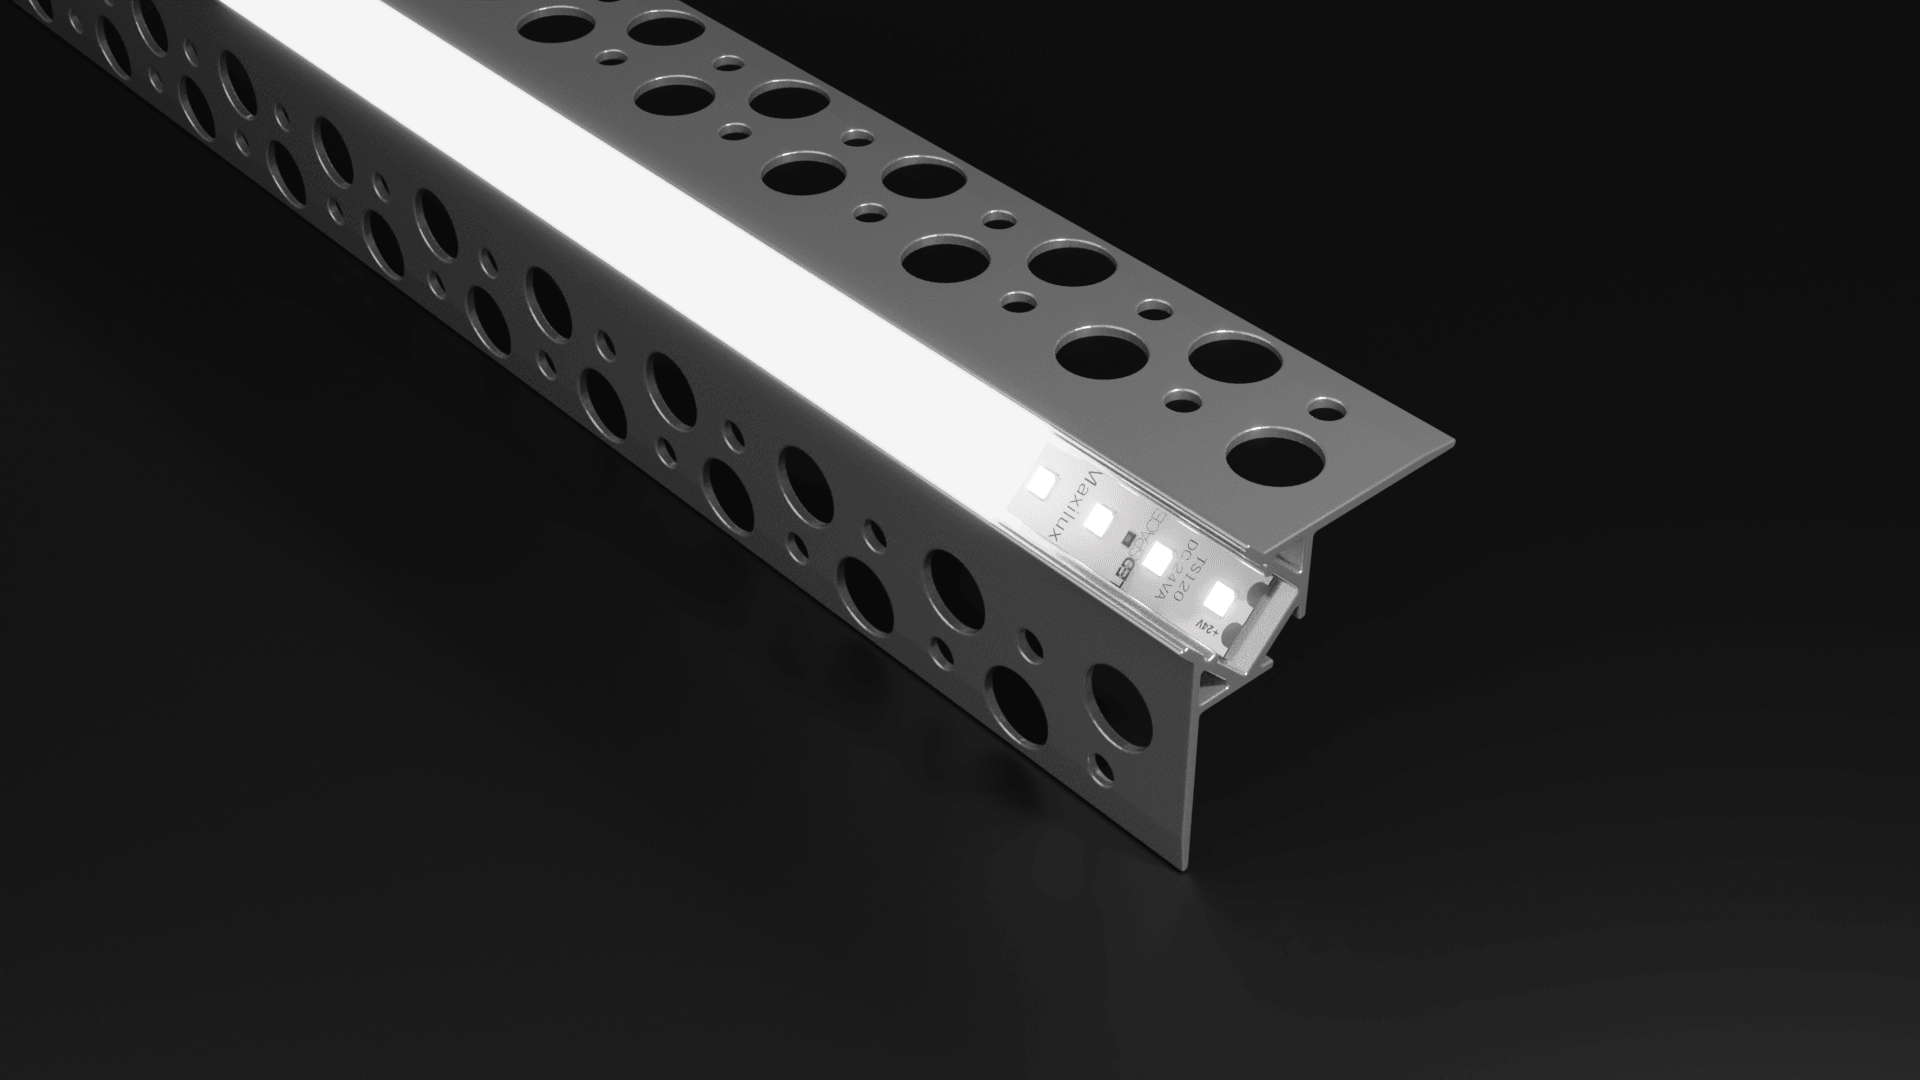 External Corner Aluminium Profile Channel for LED Strip (2.5m)